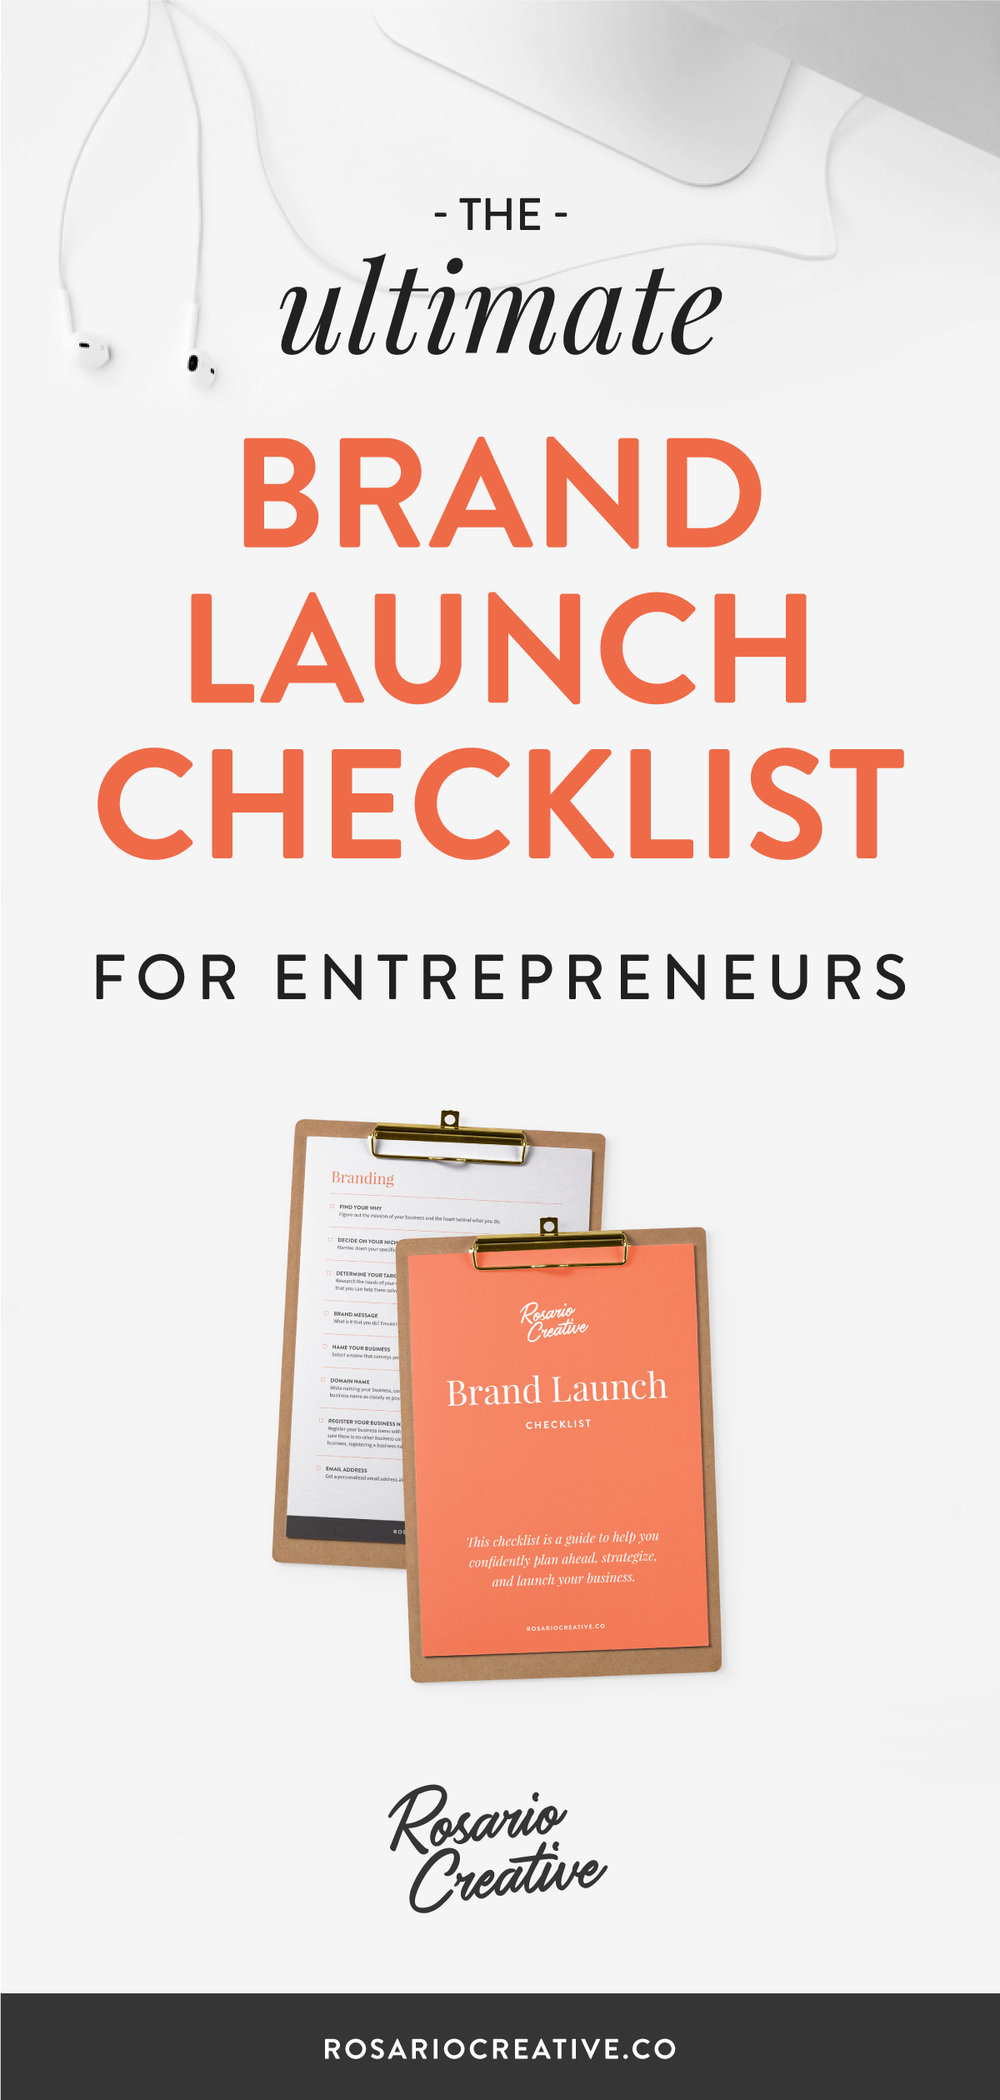 Ultimate Brand Launch Checklist for Entrepreneurs Free Download from Rosario Creative